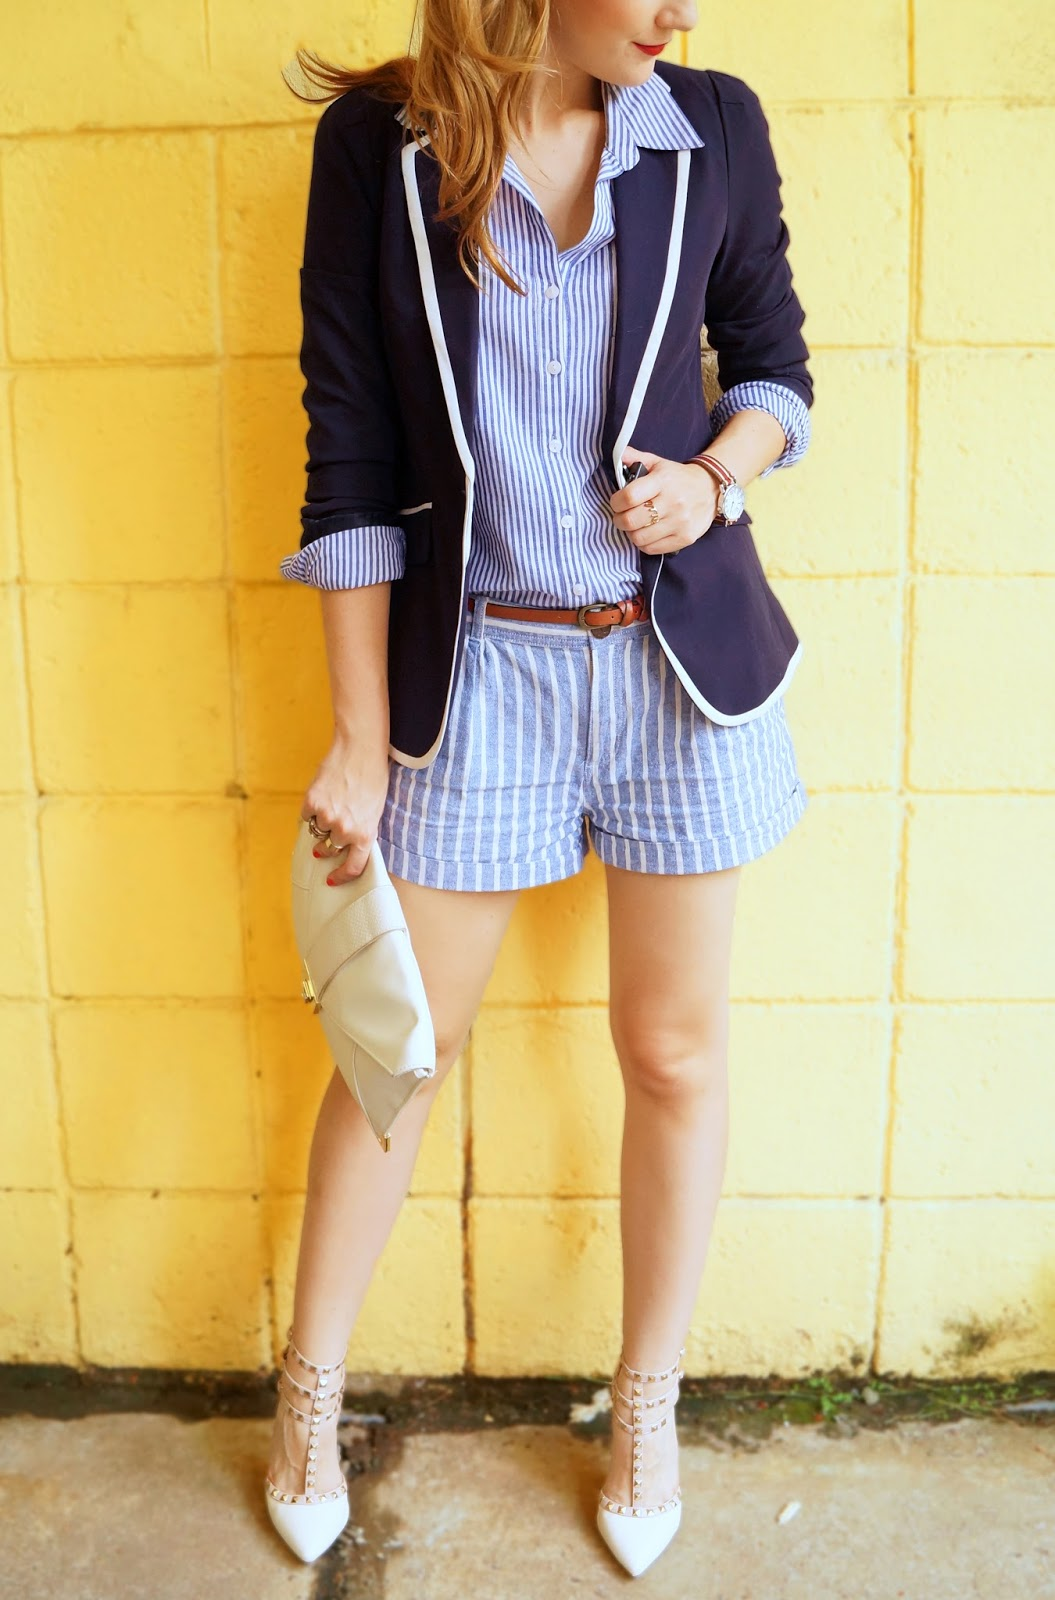 Cute Nautical Outfit in a Shorts Suit